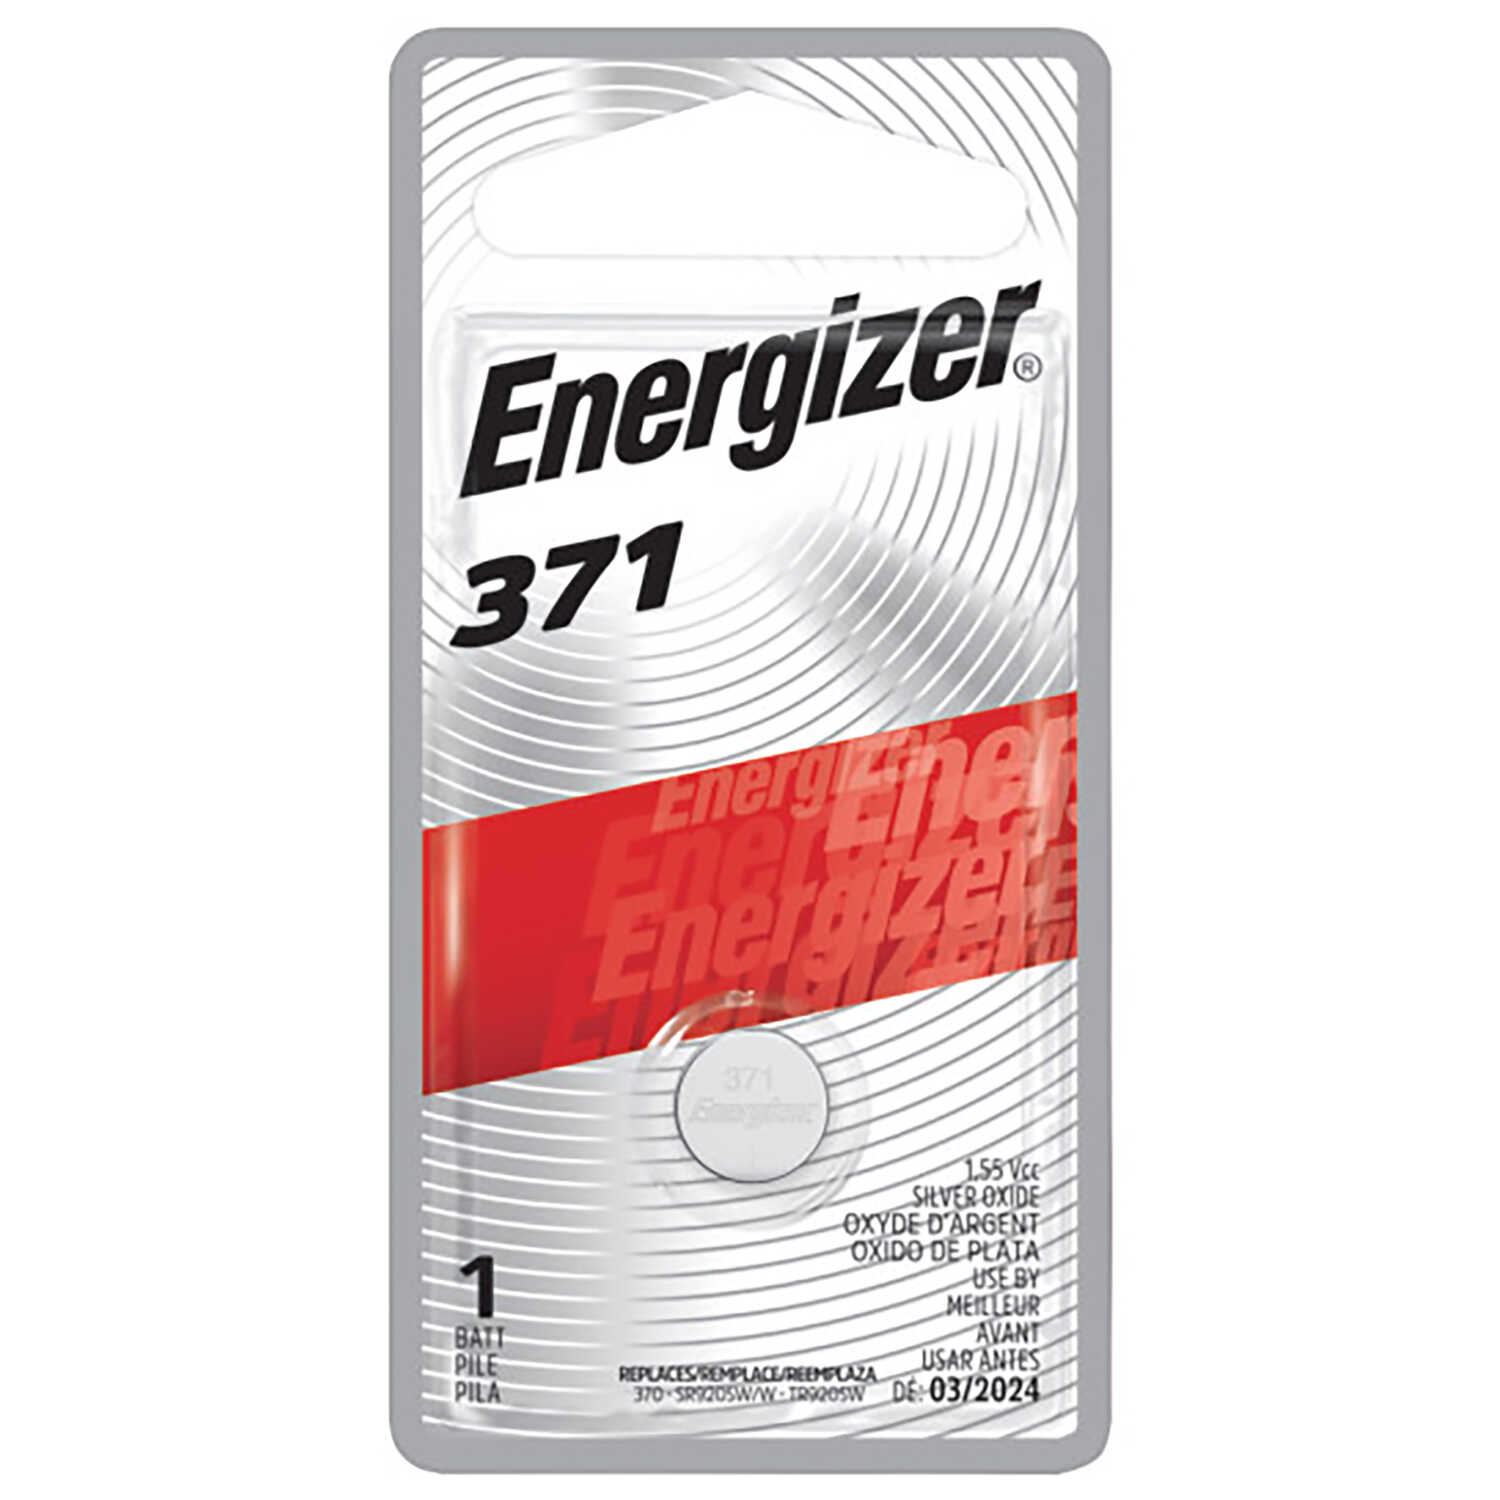 Energizer  Silver Oxide  370/371  1.5 volt Electronic/Watch Battery  1 pk